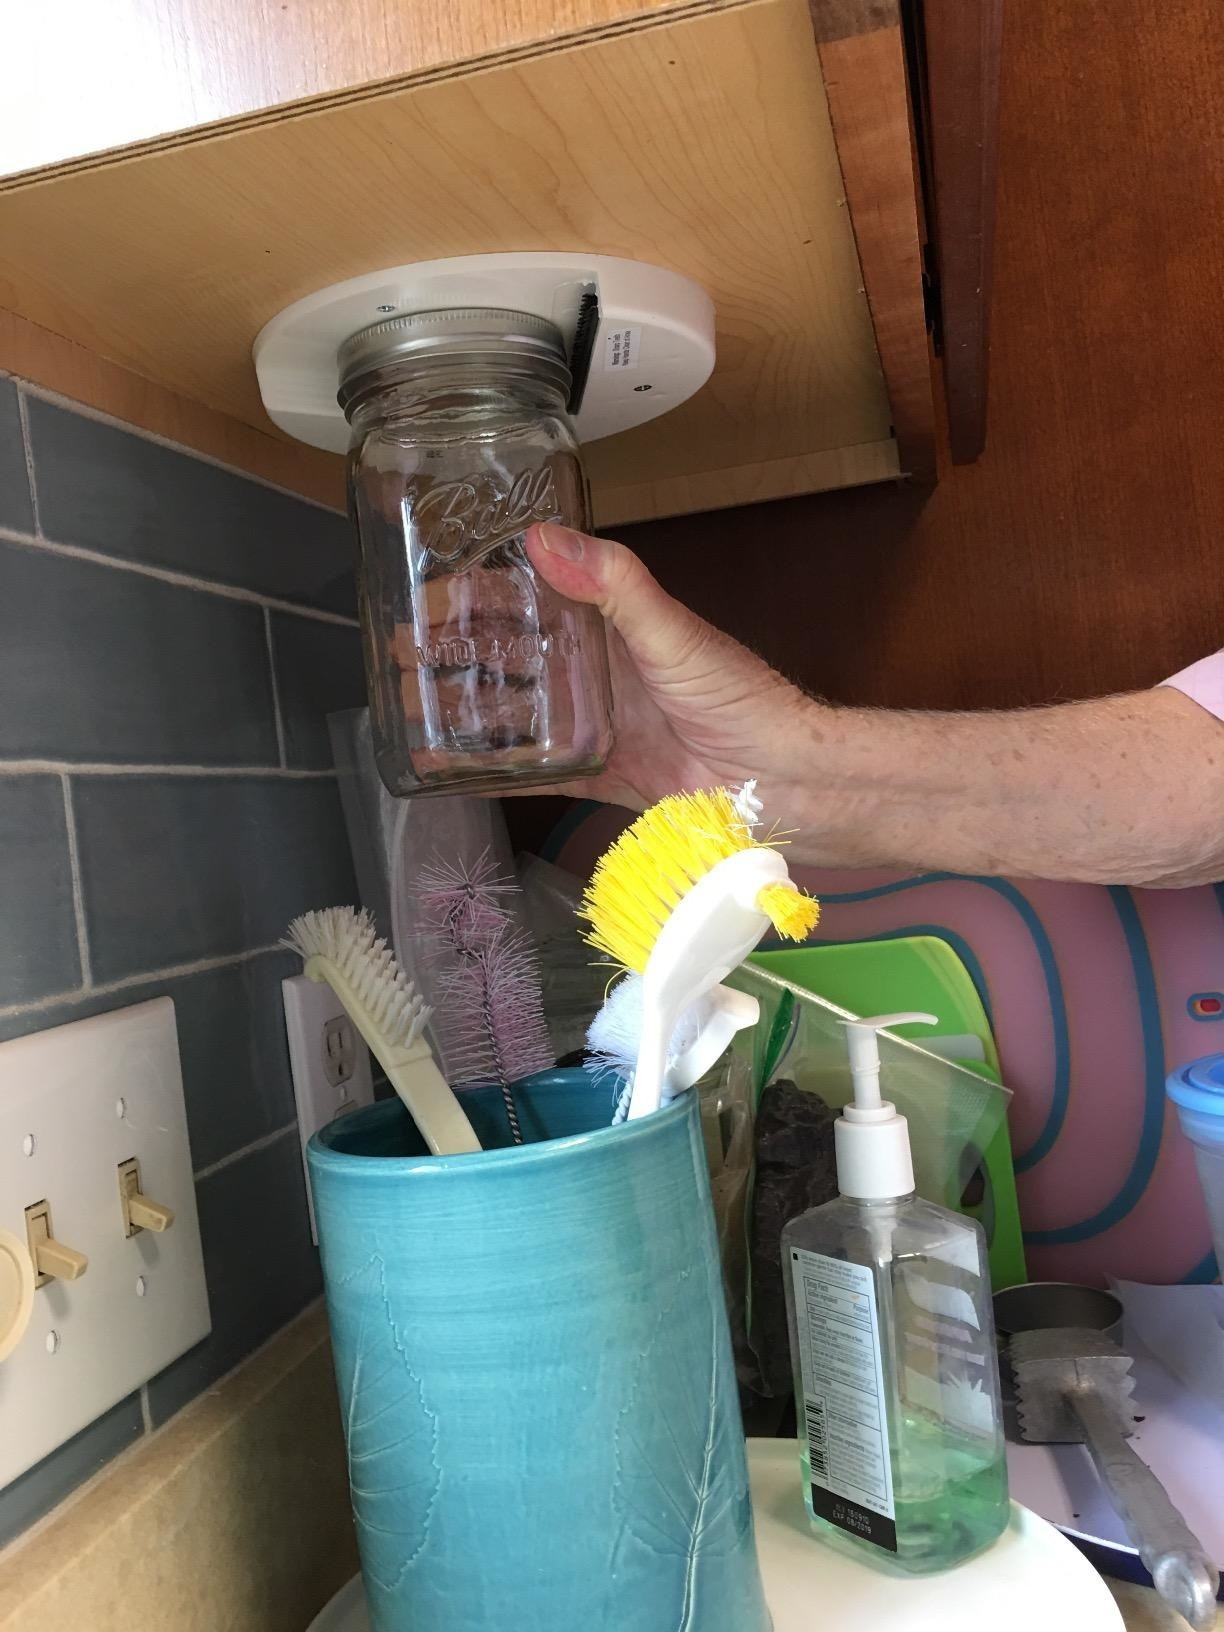 Reviewer using the jar opener, which they've attached to the bottom of a cabinet, to open a mason jar